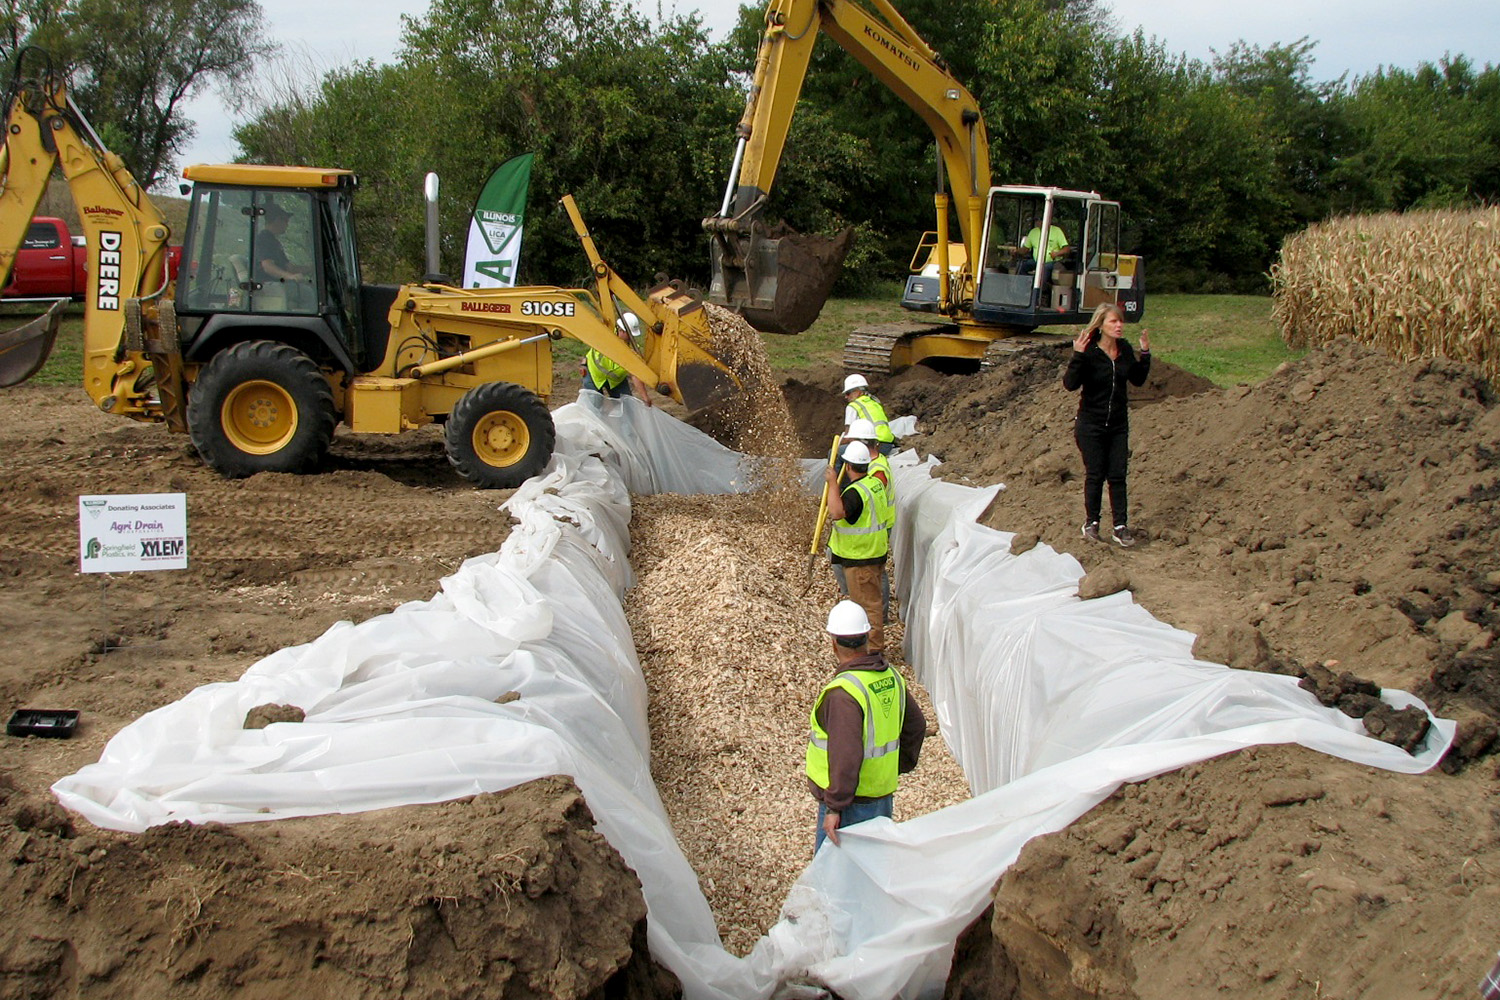 Think globally, act locally: Woodchip bioreactors help farmers reduce nutrient runoff